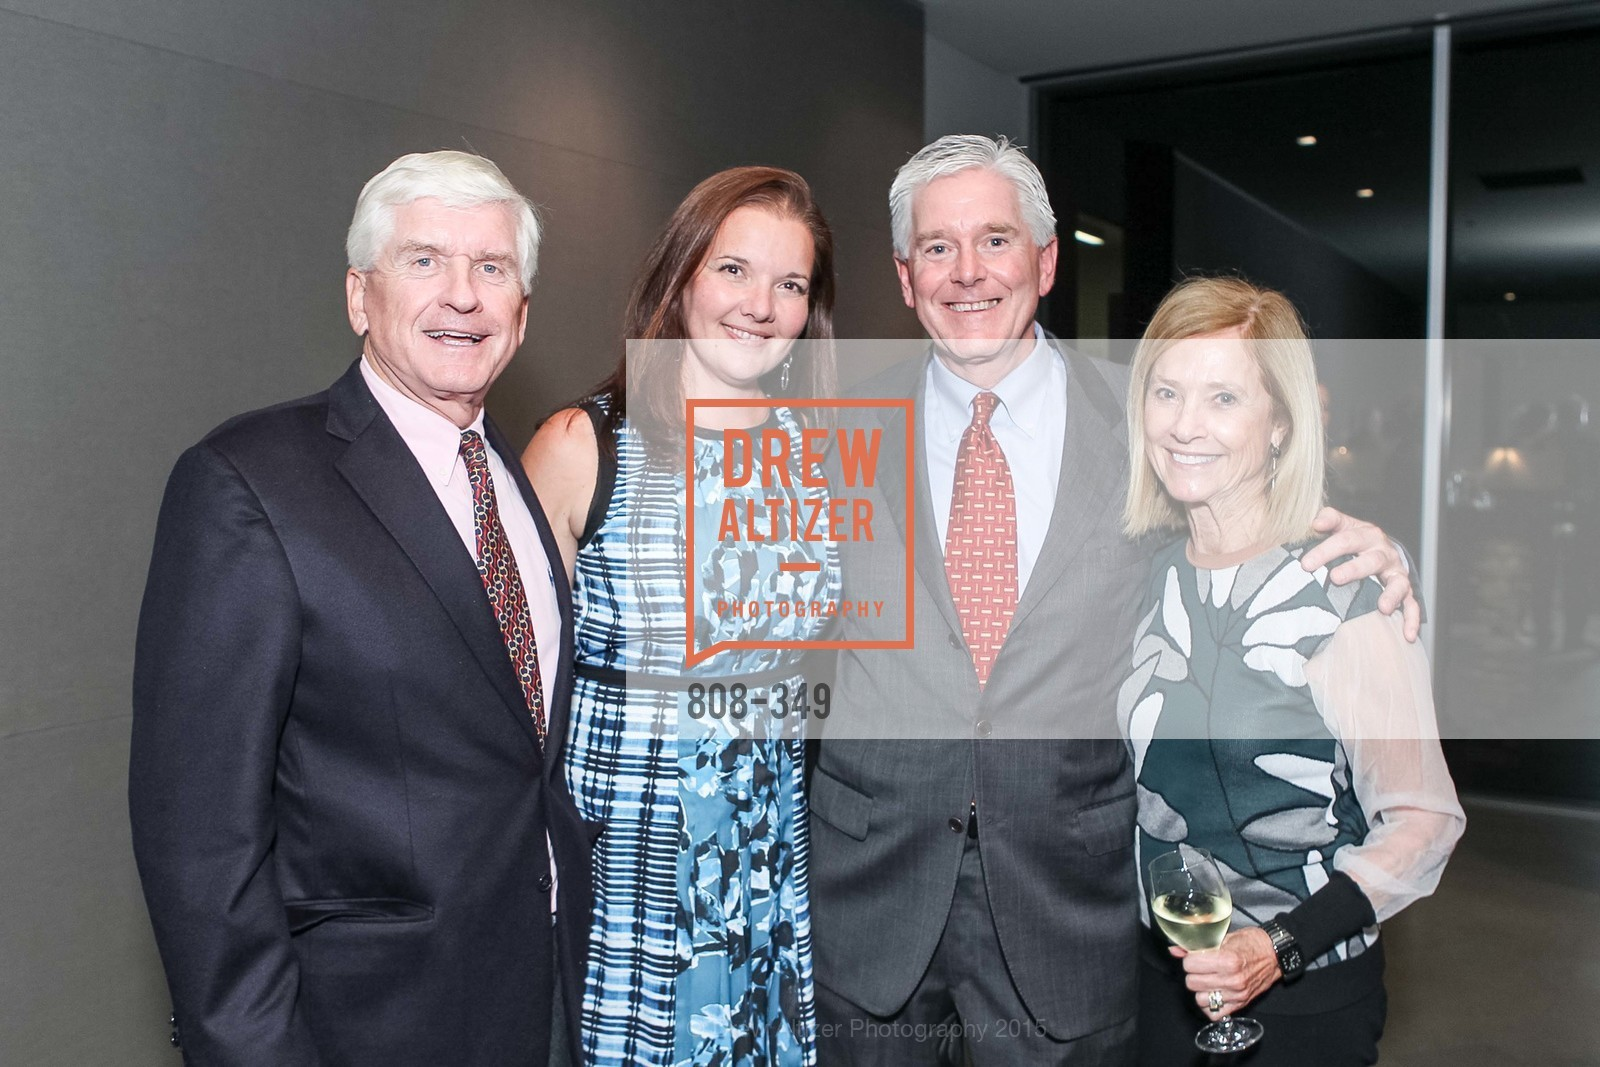 Bob Barrett, Rachel Elgensmith, John Kerrigan, Maureen Sullivan, Cocktails on the Pier- A BASIC Fund Thank You, Pier 24 Photography. 24 Pier The Embarcadero, October 8th, 2015,Drew Altizer, Drew Altizer Photography, full-service agency, private events, San Francisco photographer, photographer california